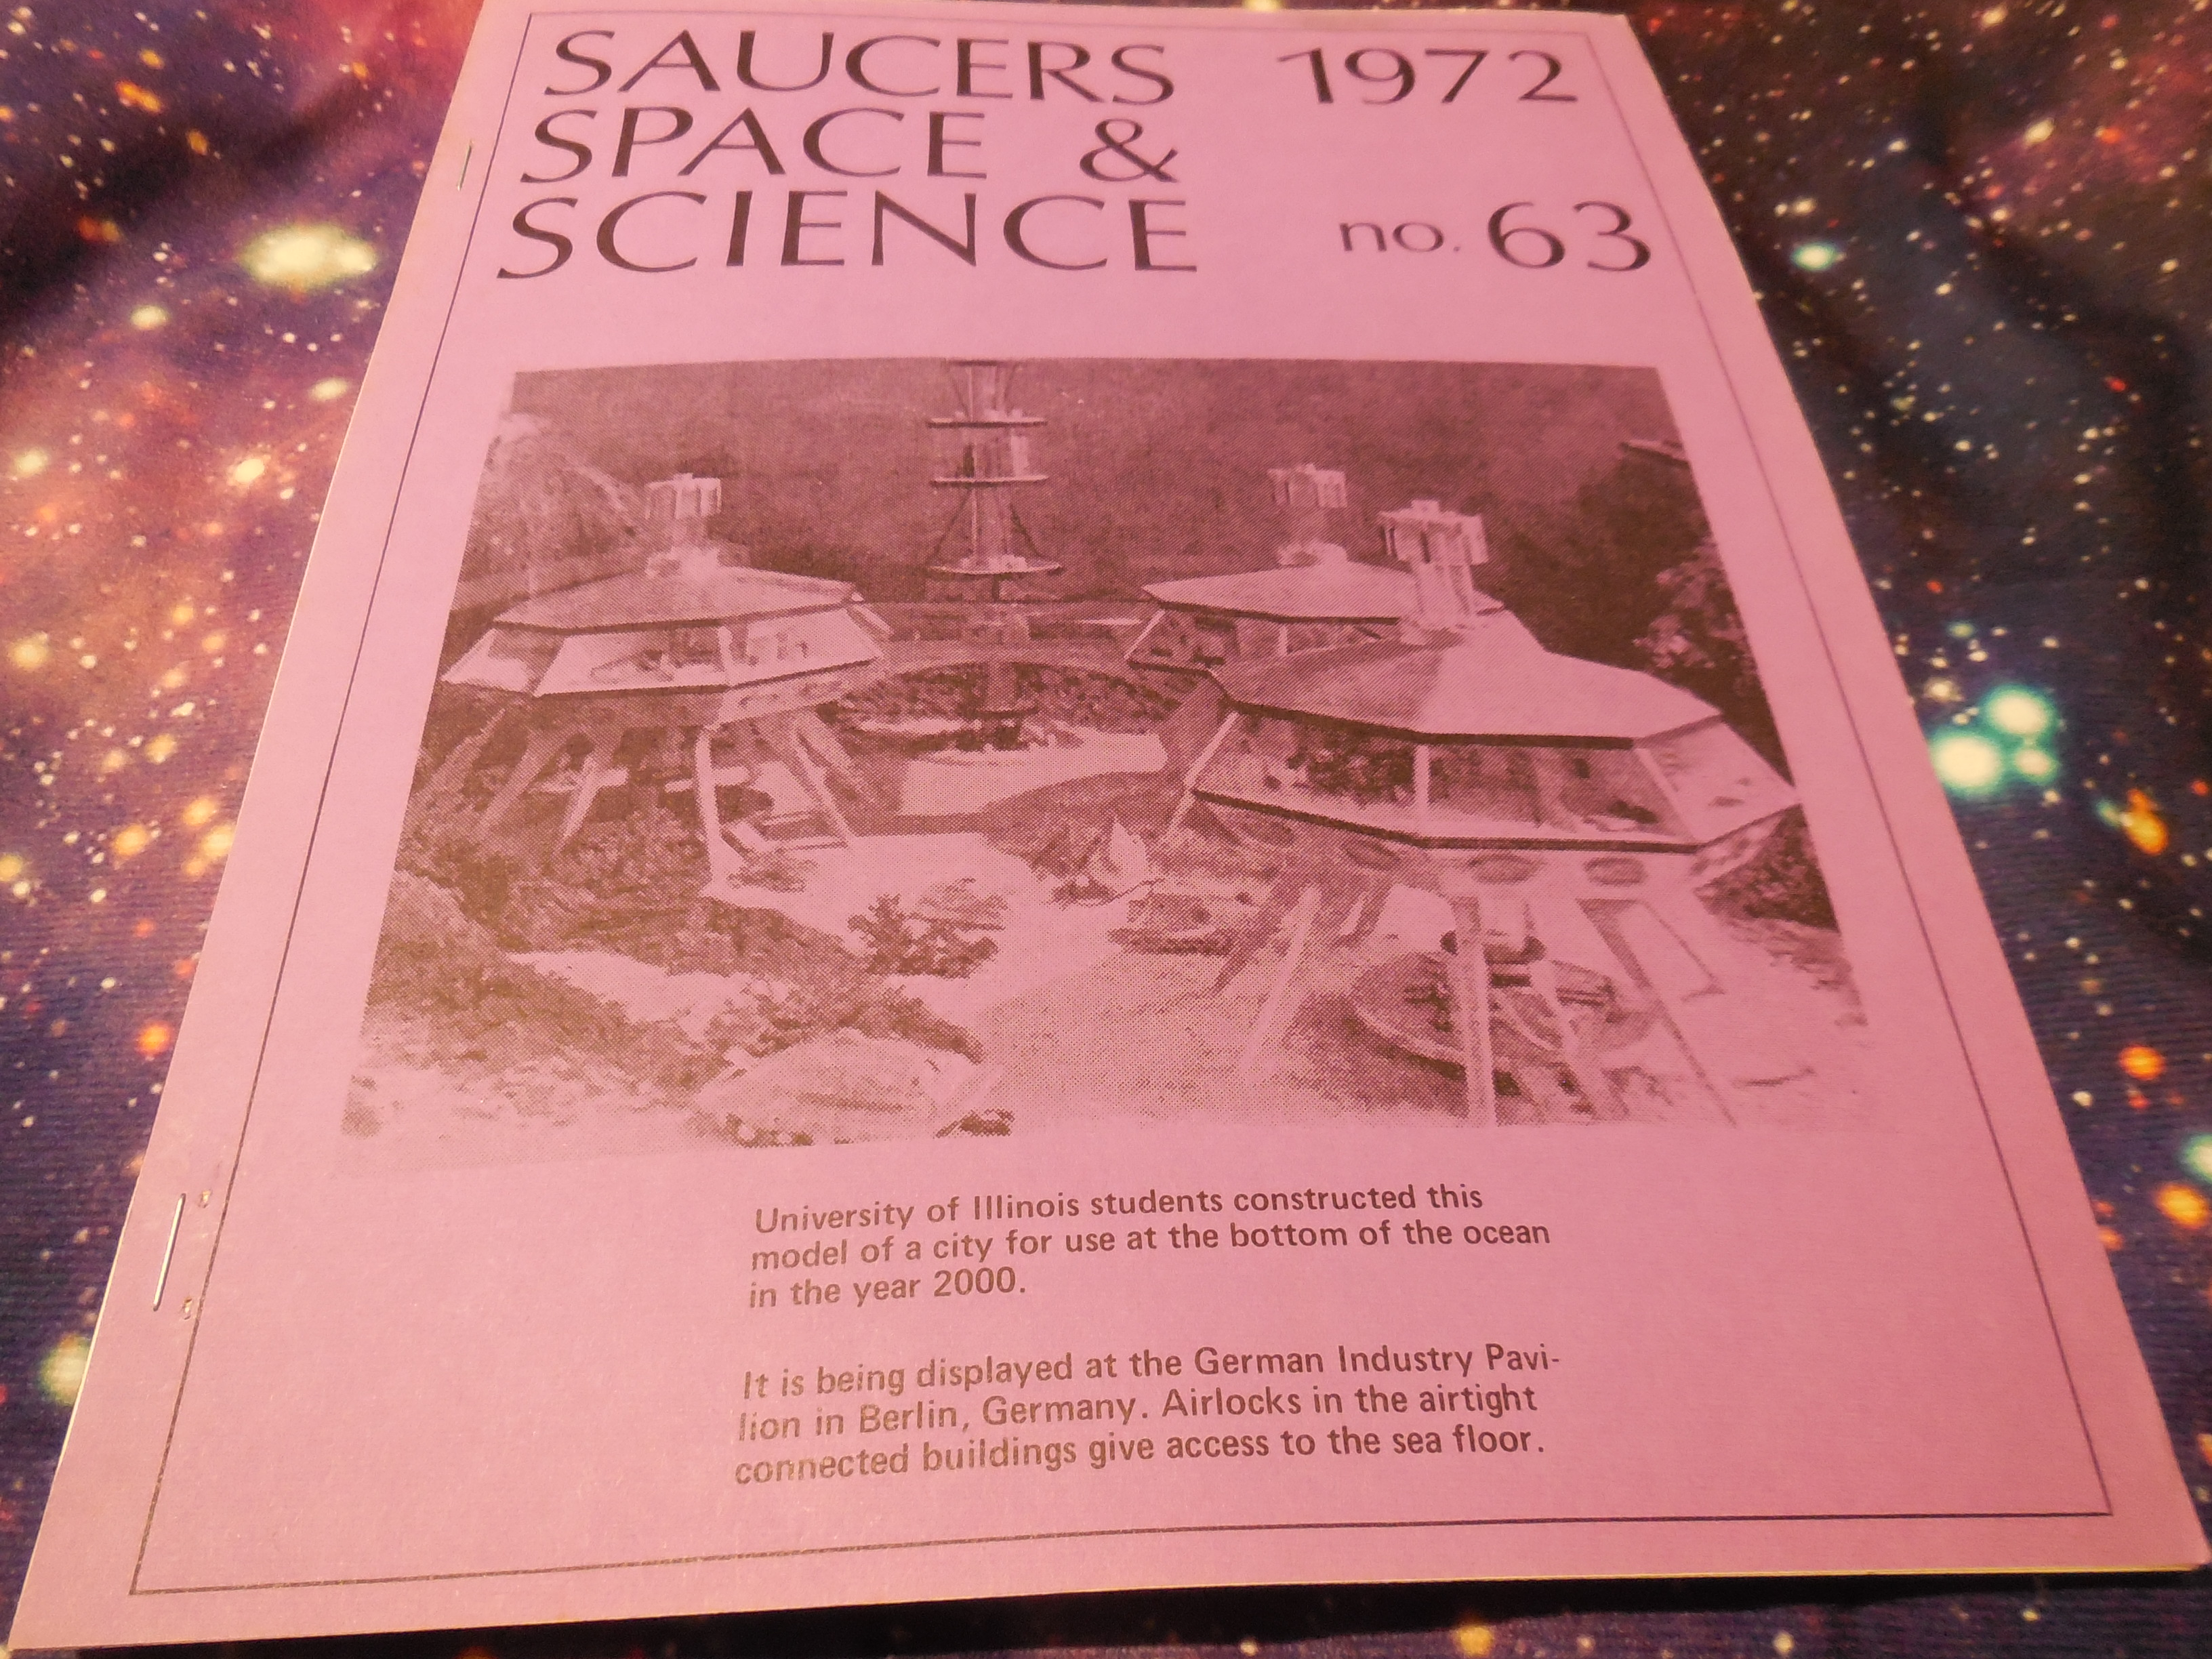 Image for Saucers, Space & Science, Issue No. 63, 1972